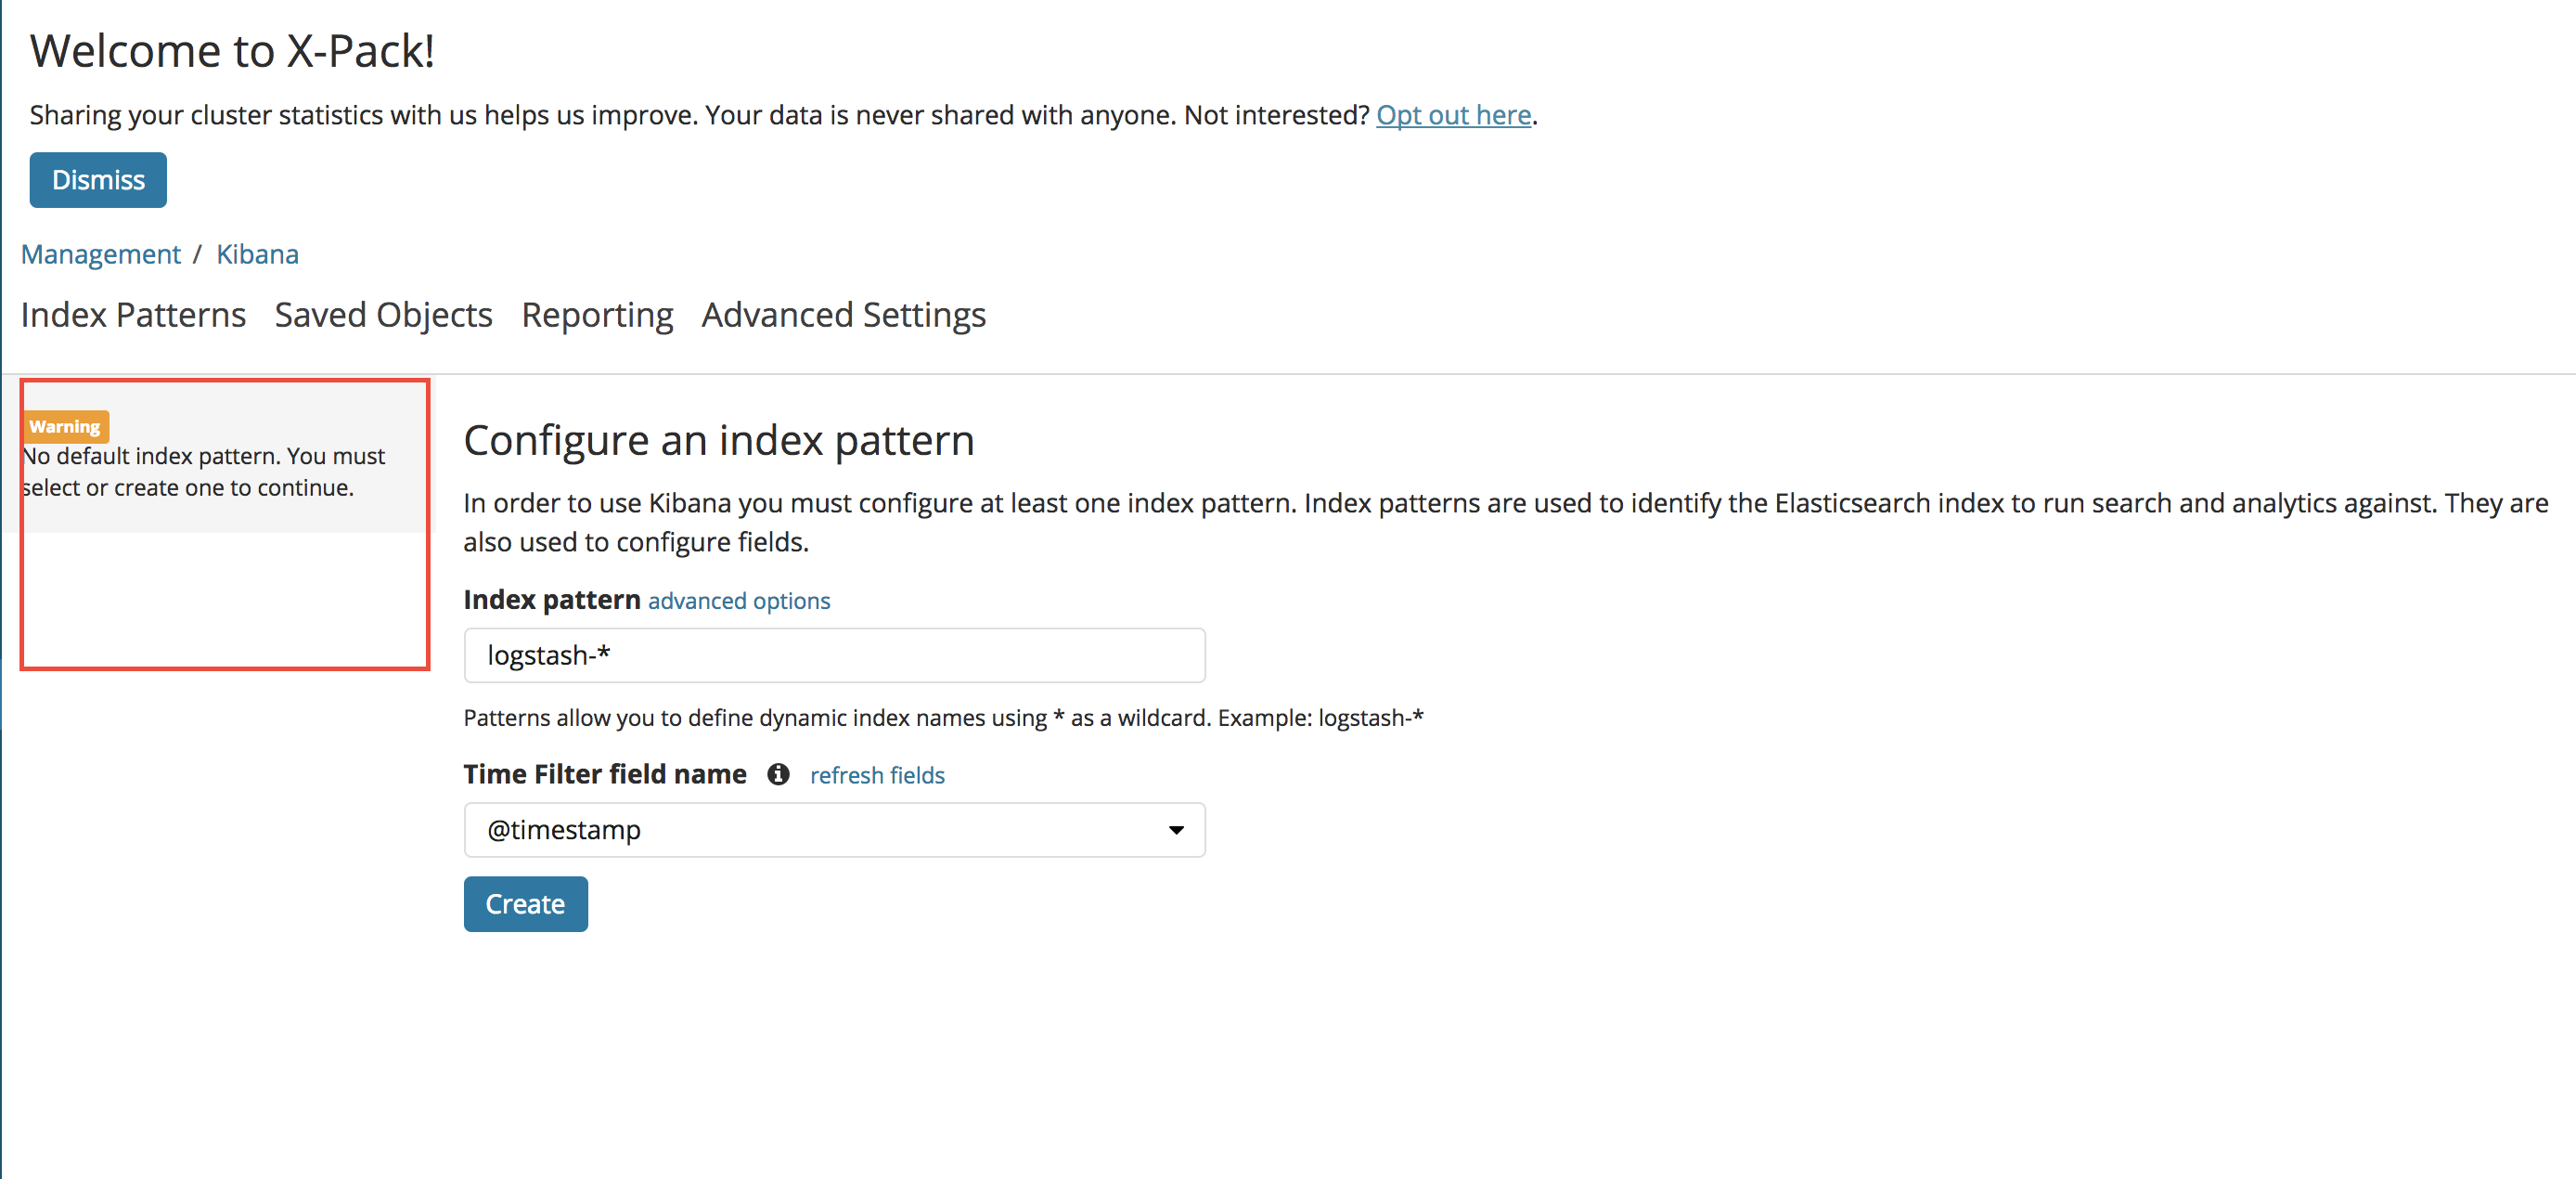 Cannot specify a default index pattern · Issue #15 · elastic